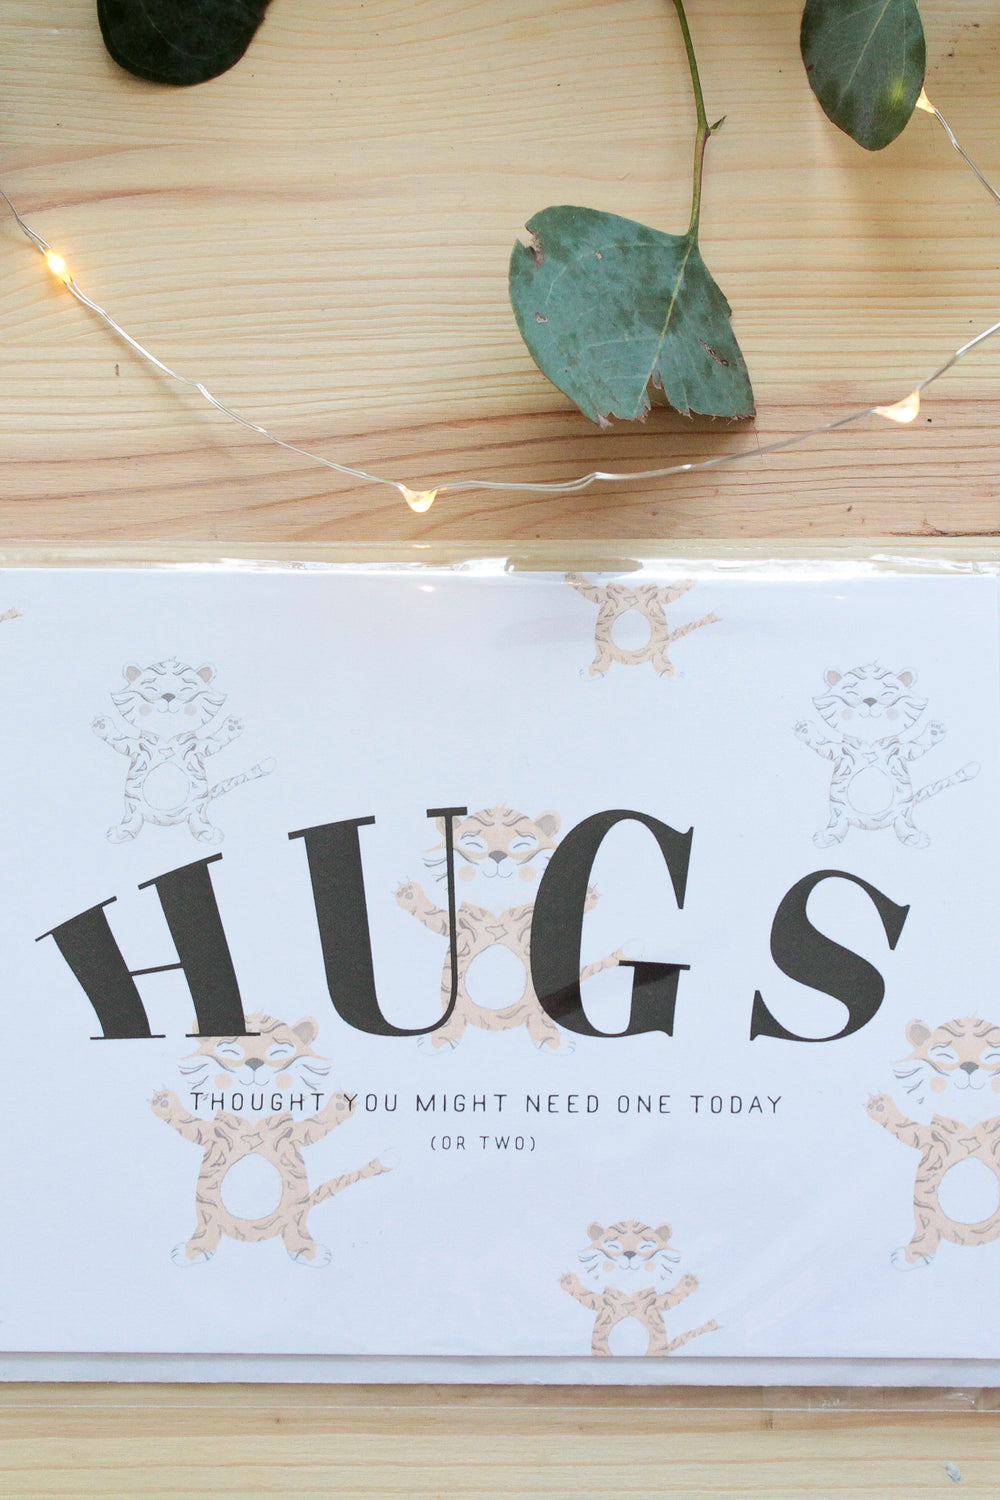 Hugs Greeting Card